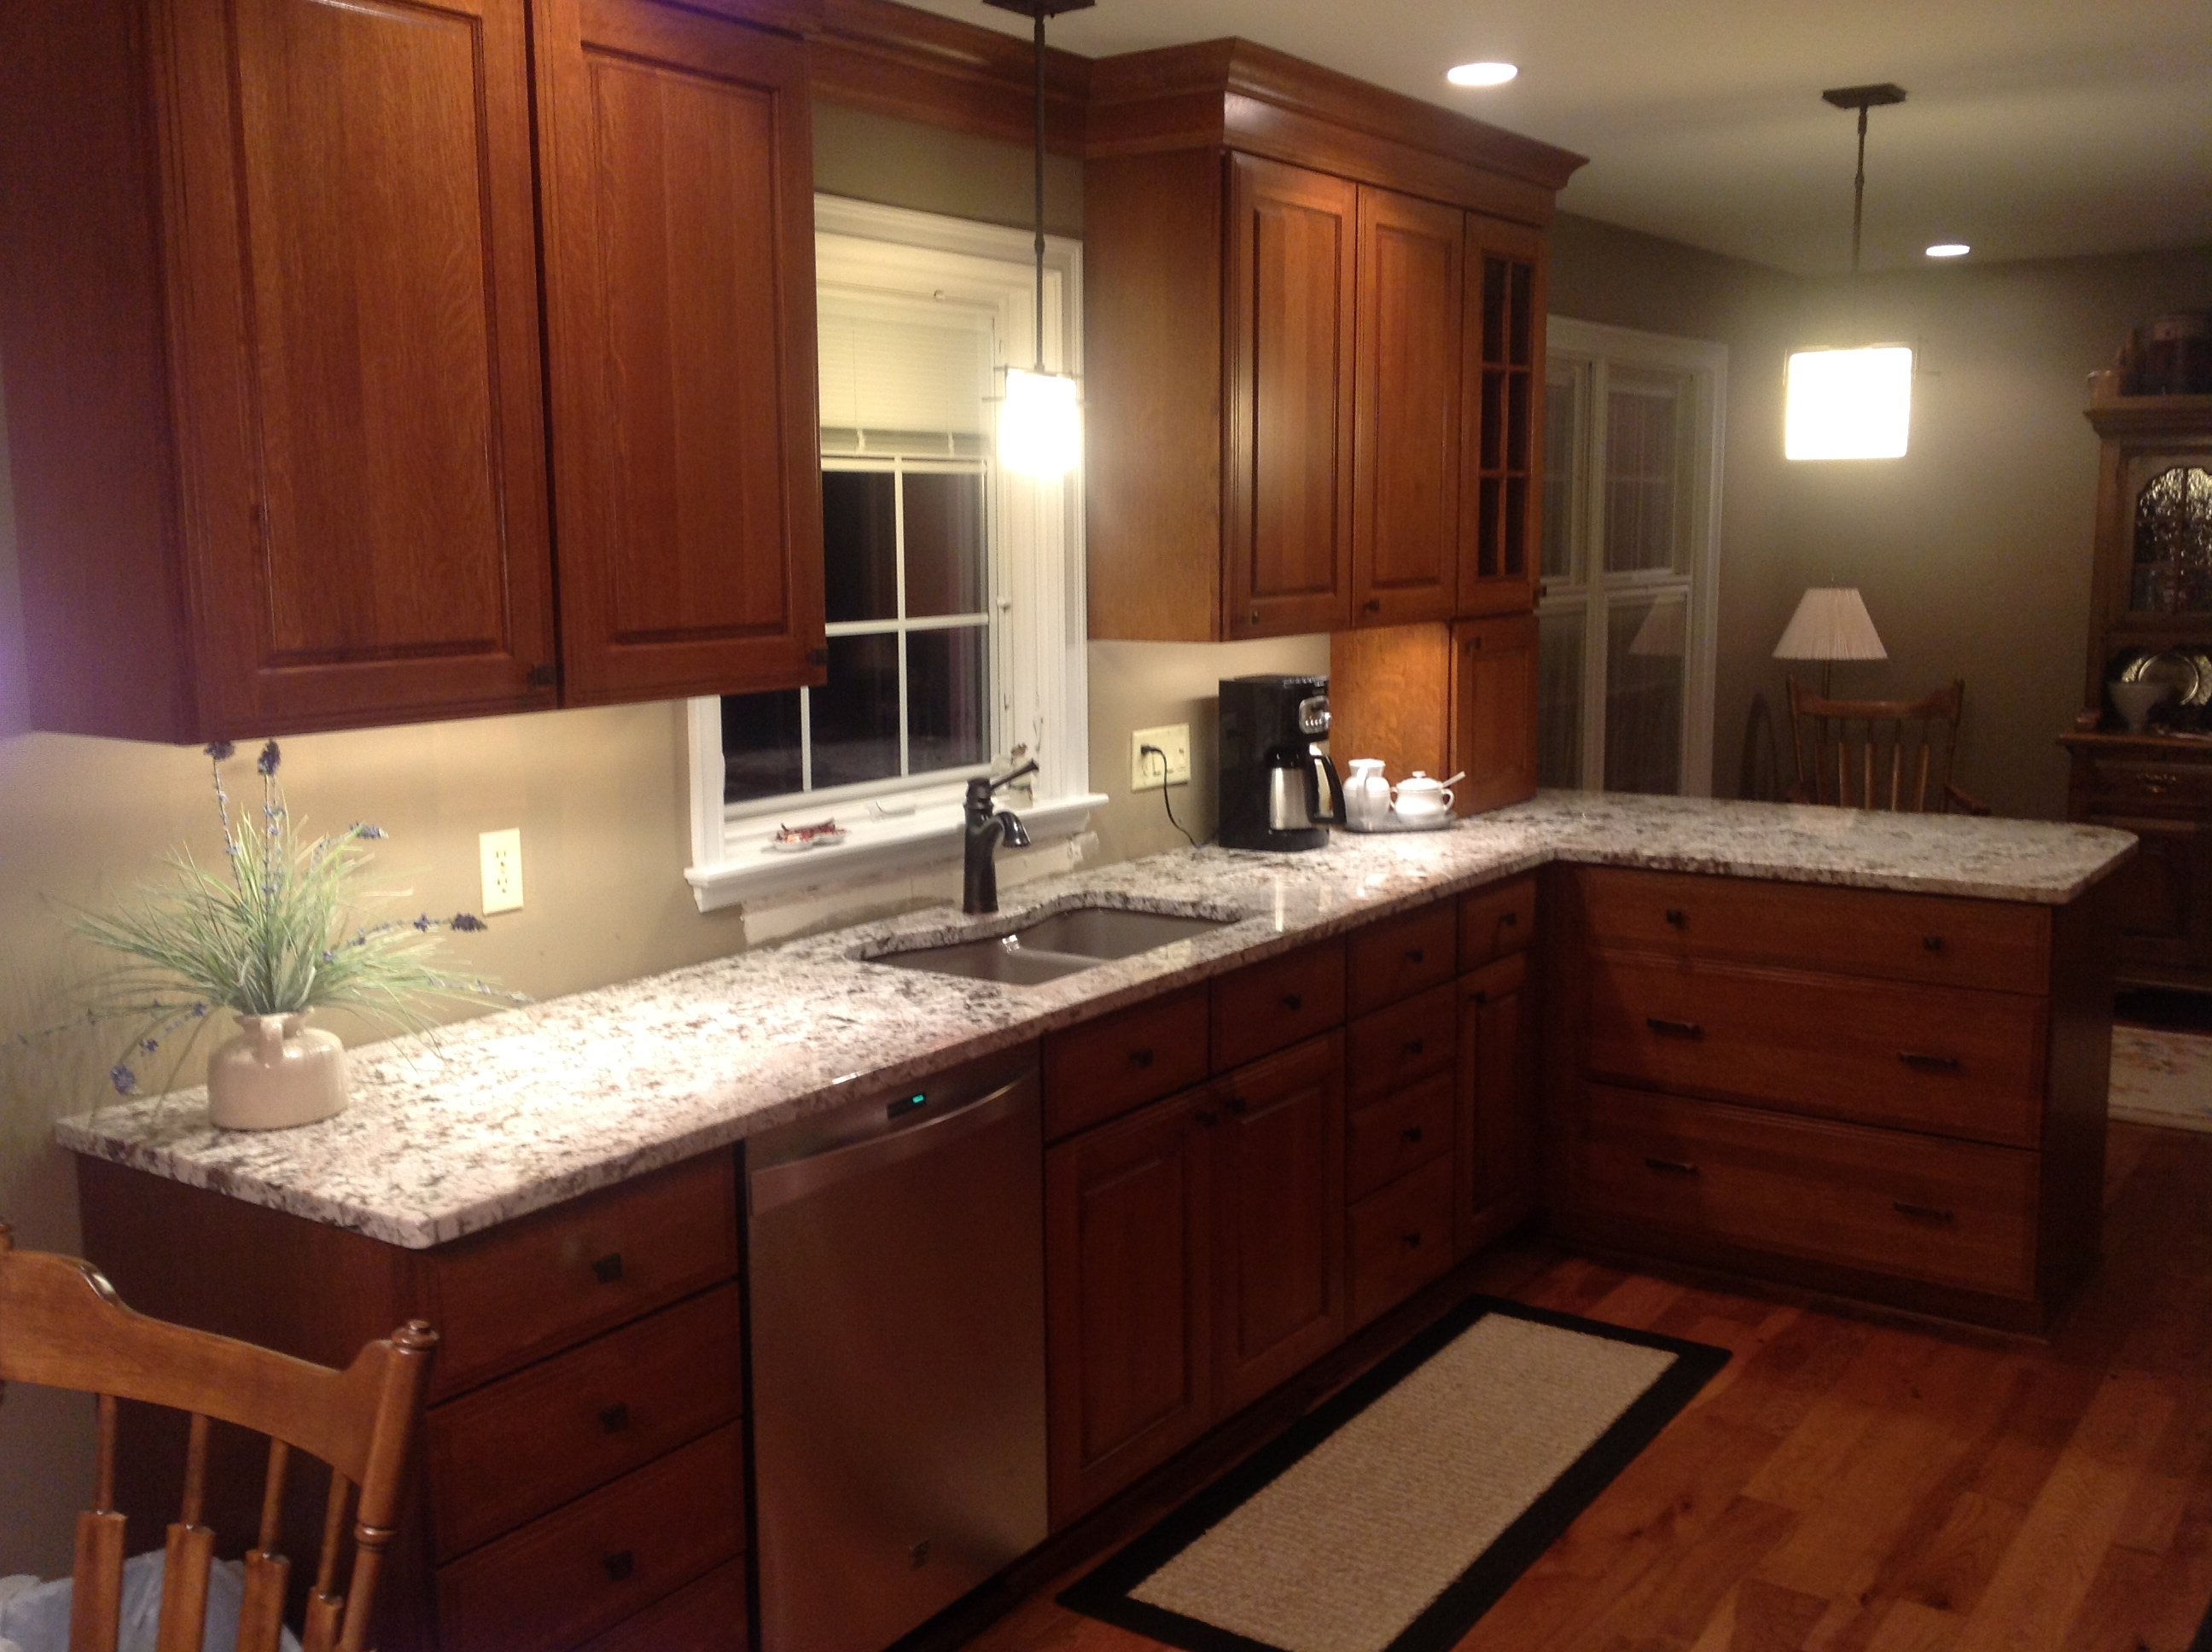 Bianco Antico Granite Kitchen Countertops